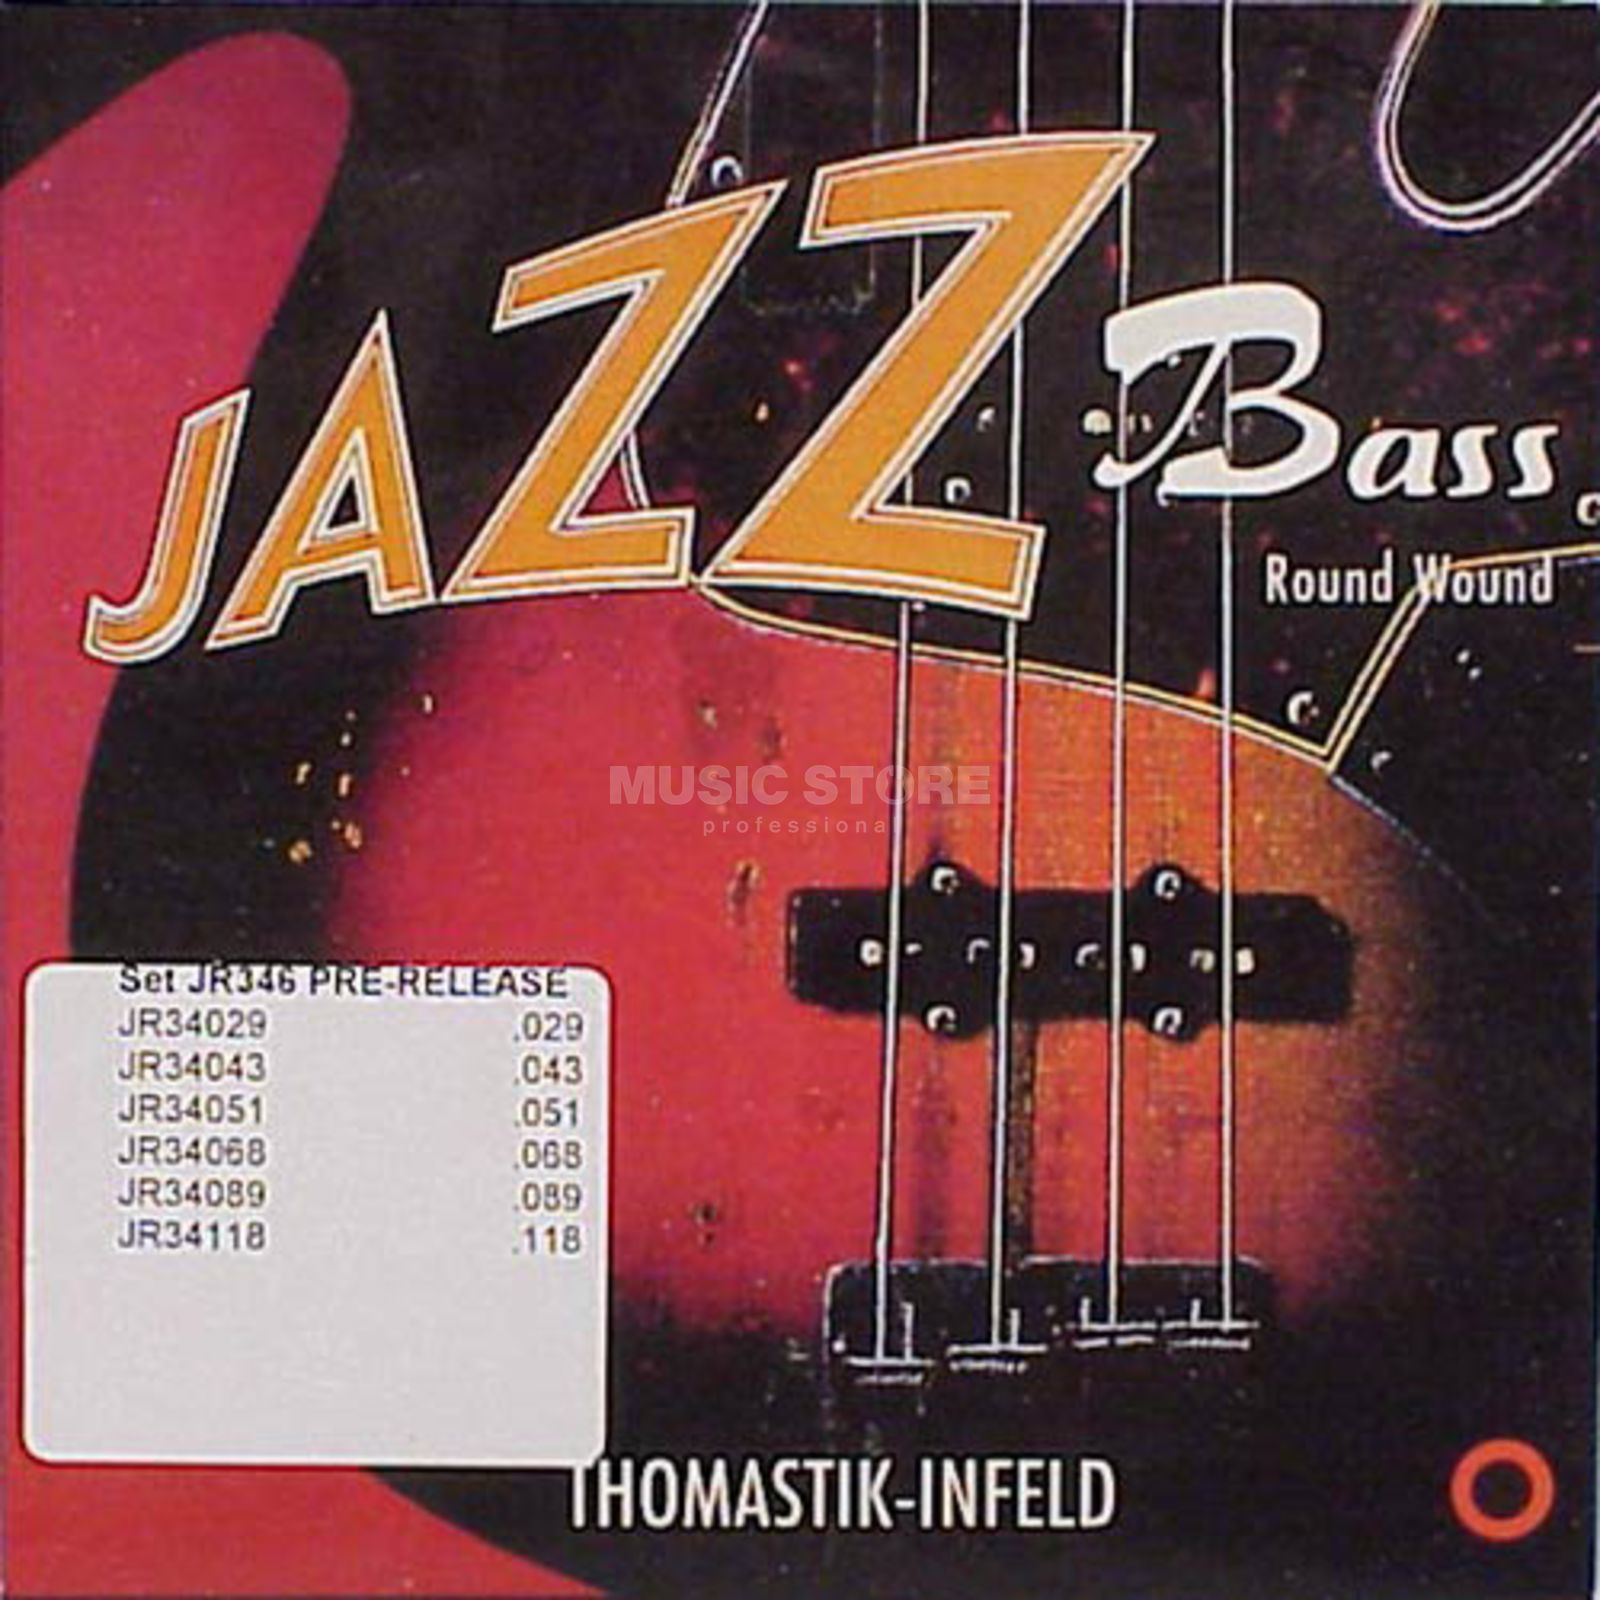 Thomastik 6 Bass Strings JR 346 29-118 Nickel Round Wound Immagine prodotto